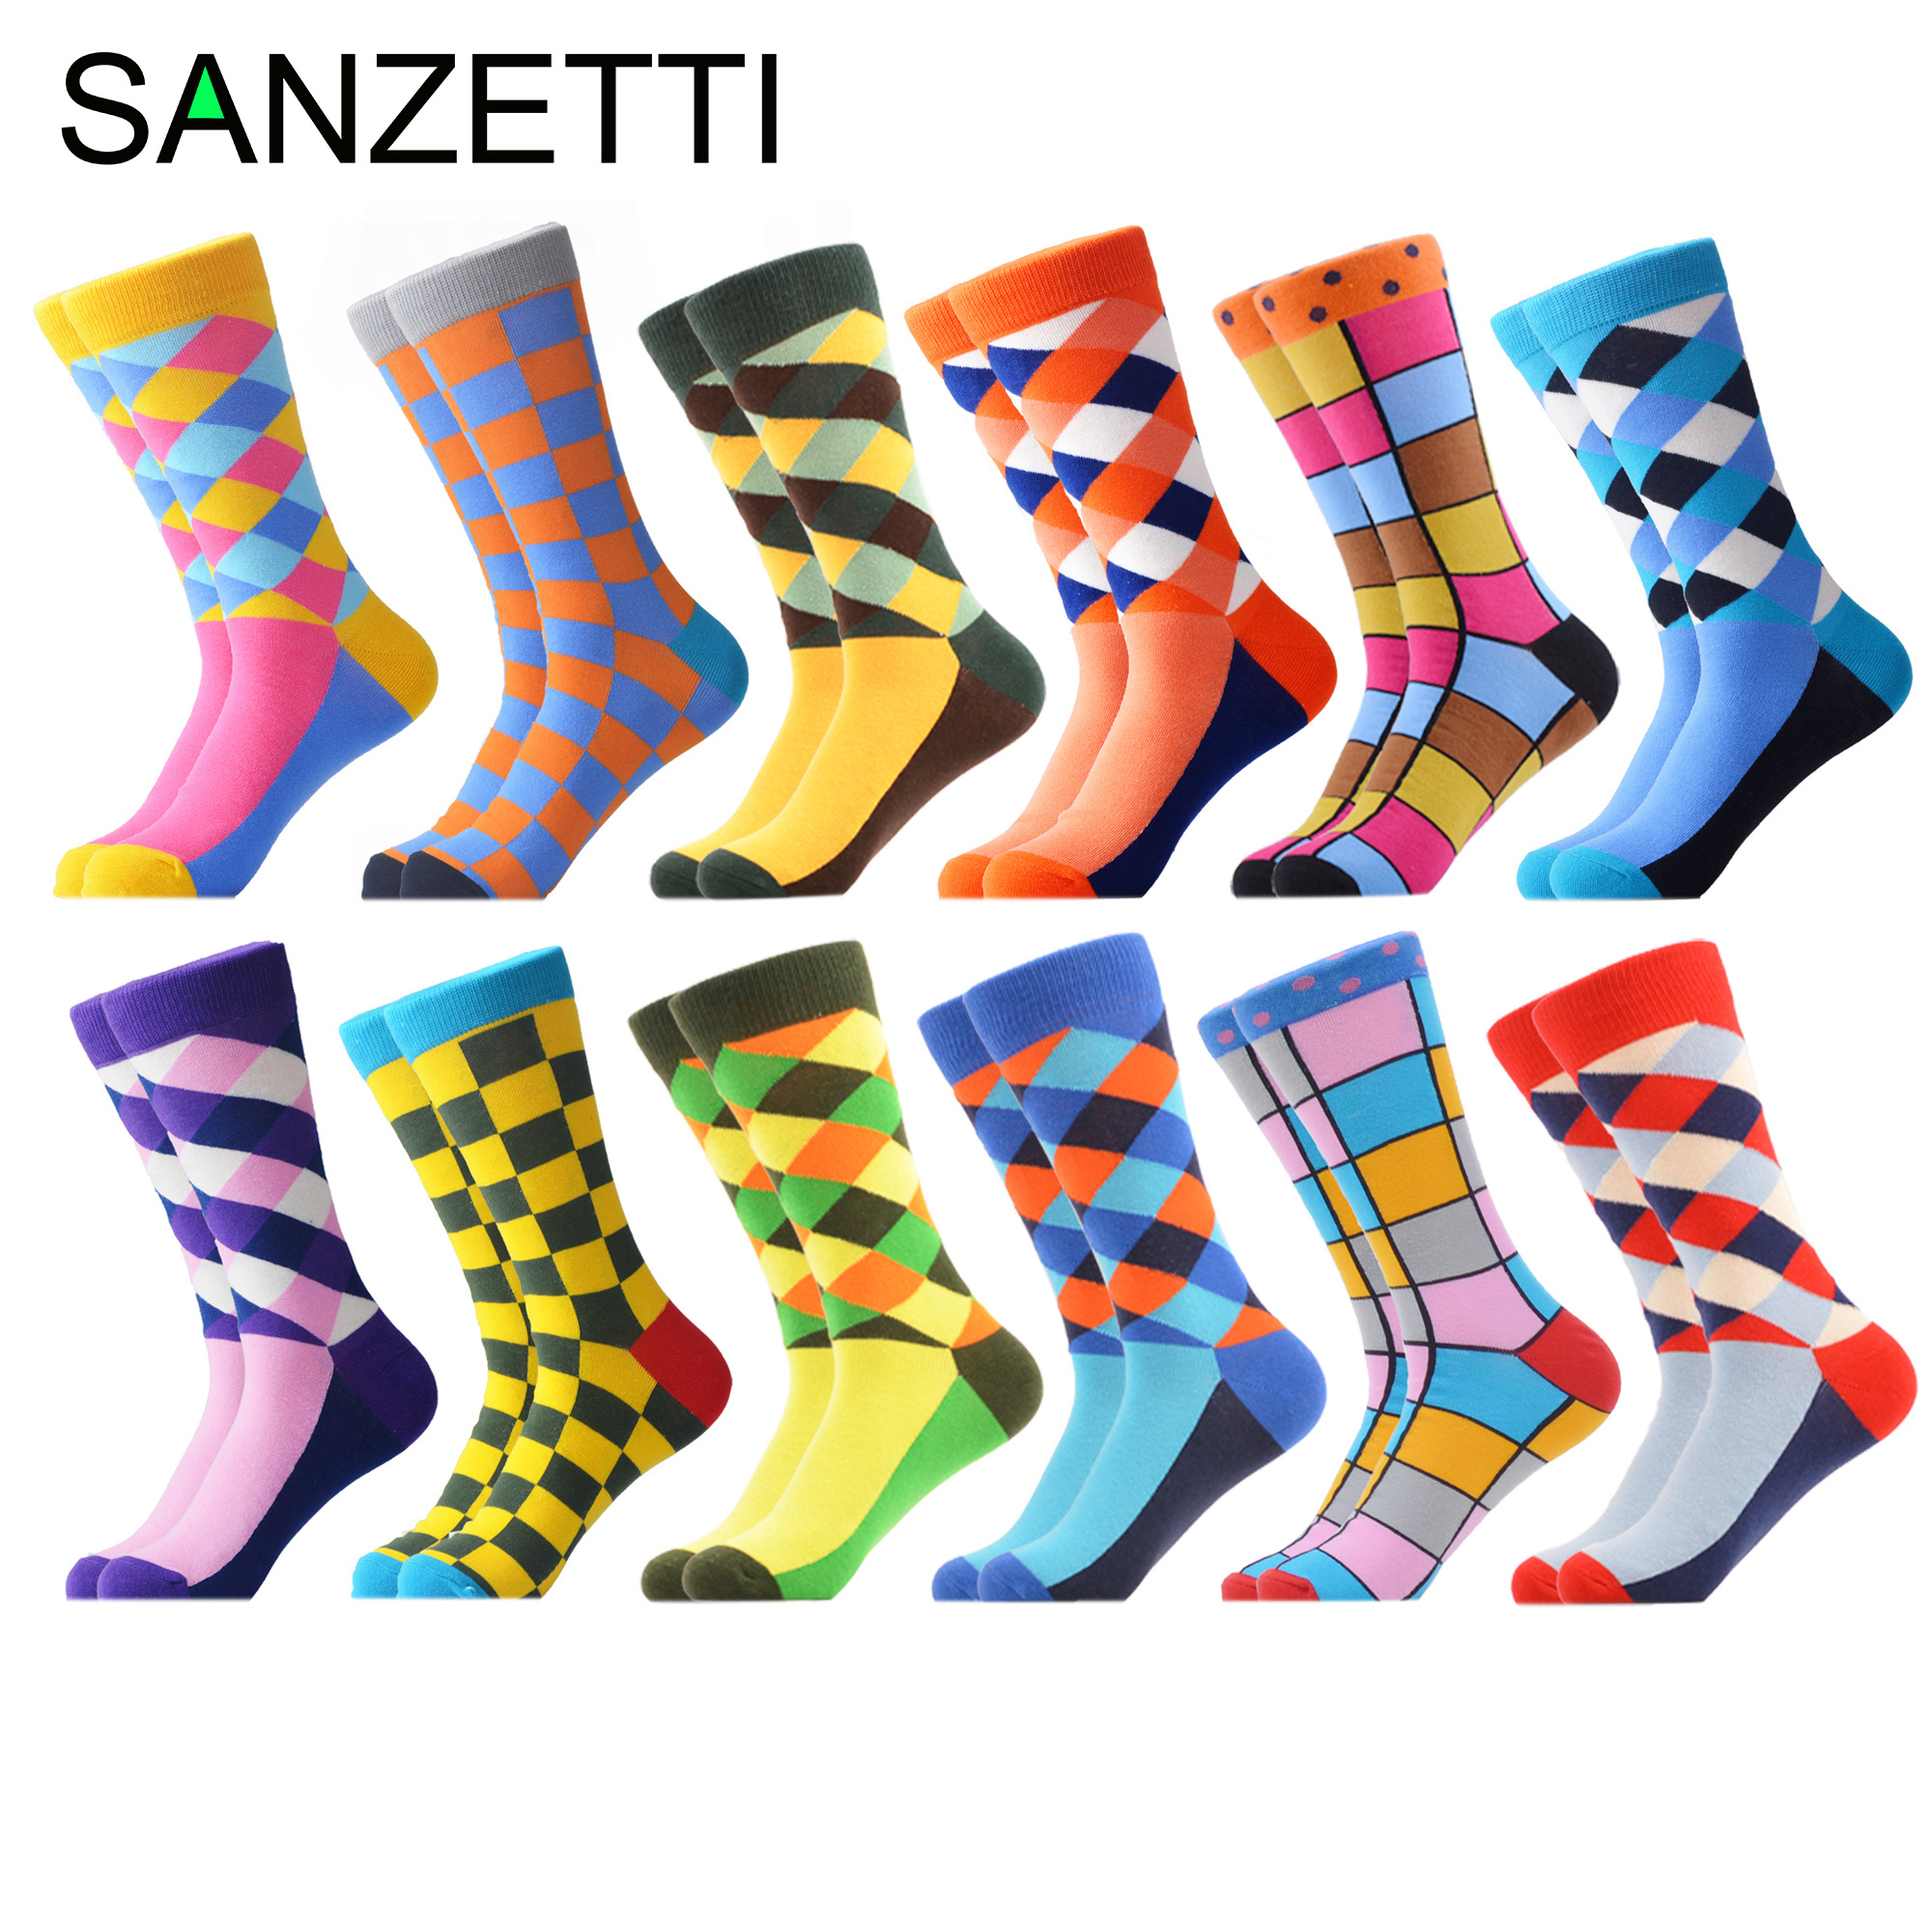 SANZETTI 12 Pairs/Lot Novelty Men's Colorful Combed Cotton Winter Warm Crew Socks Casual Personality Happy Wedding Dress Socks